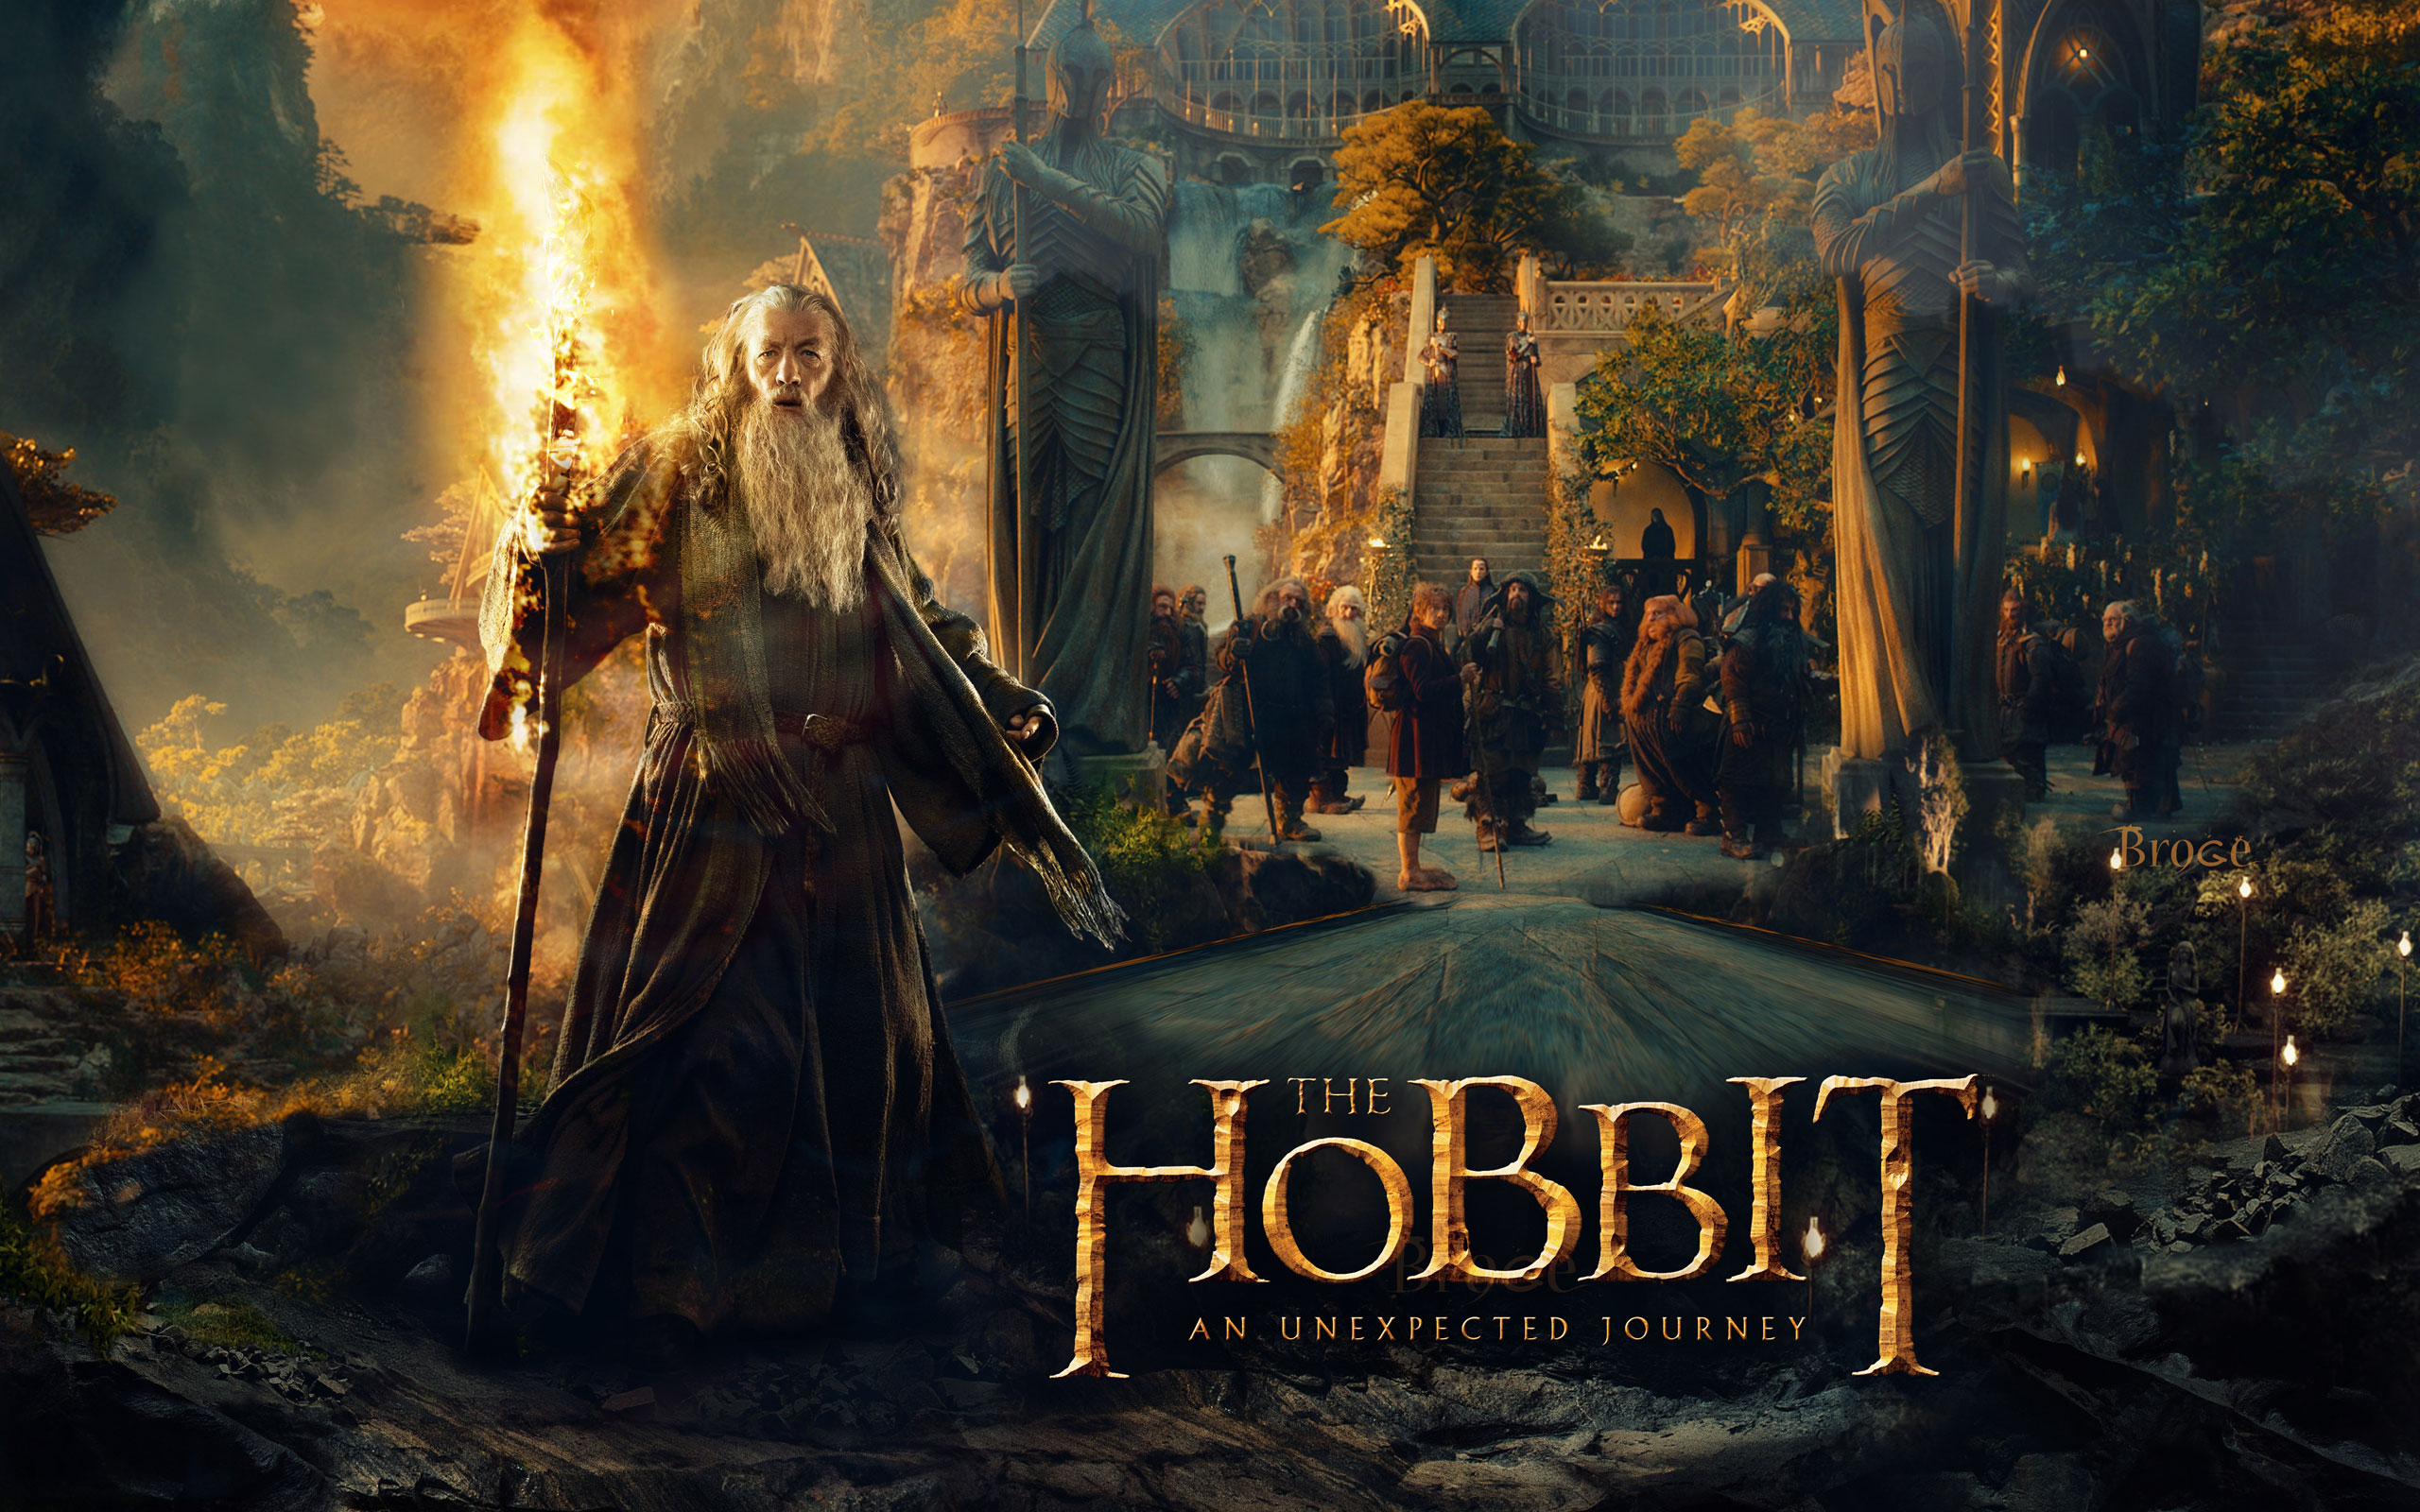 Wallpapers   The Hobbit 2560x1600 wallpaper 2560x1600